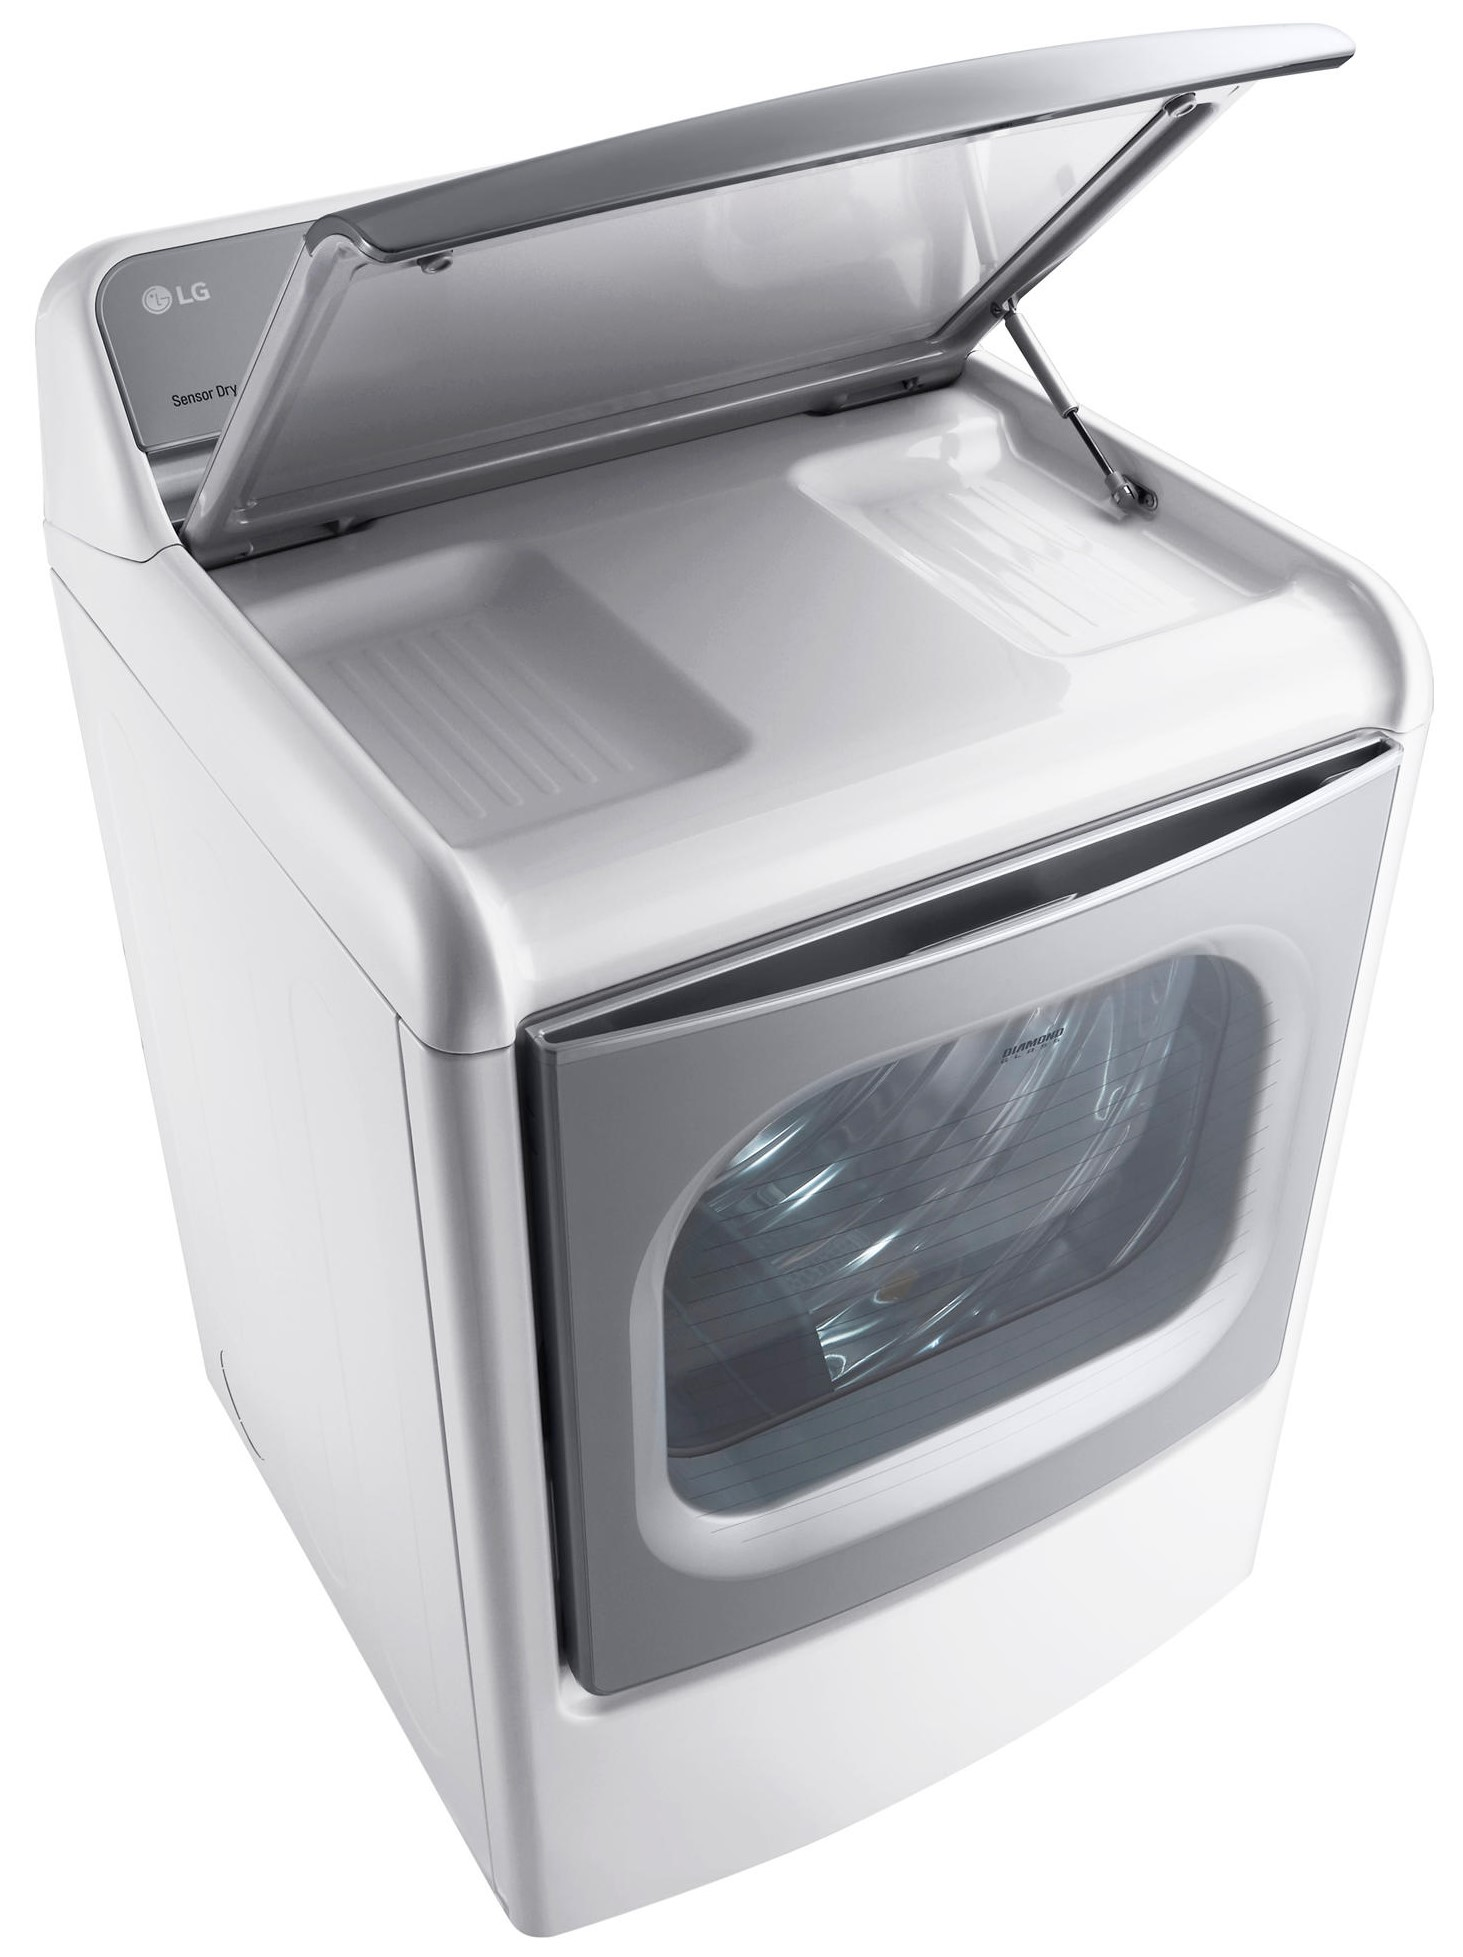 Lg Front Load Electric Dryer White Dlex7700we Dc Appliance Together With Samsung Clothes Additionally Maytag